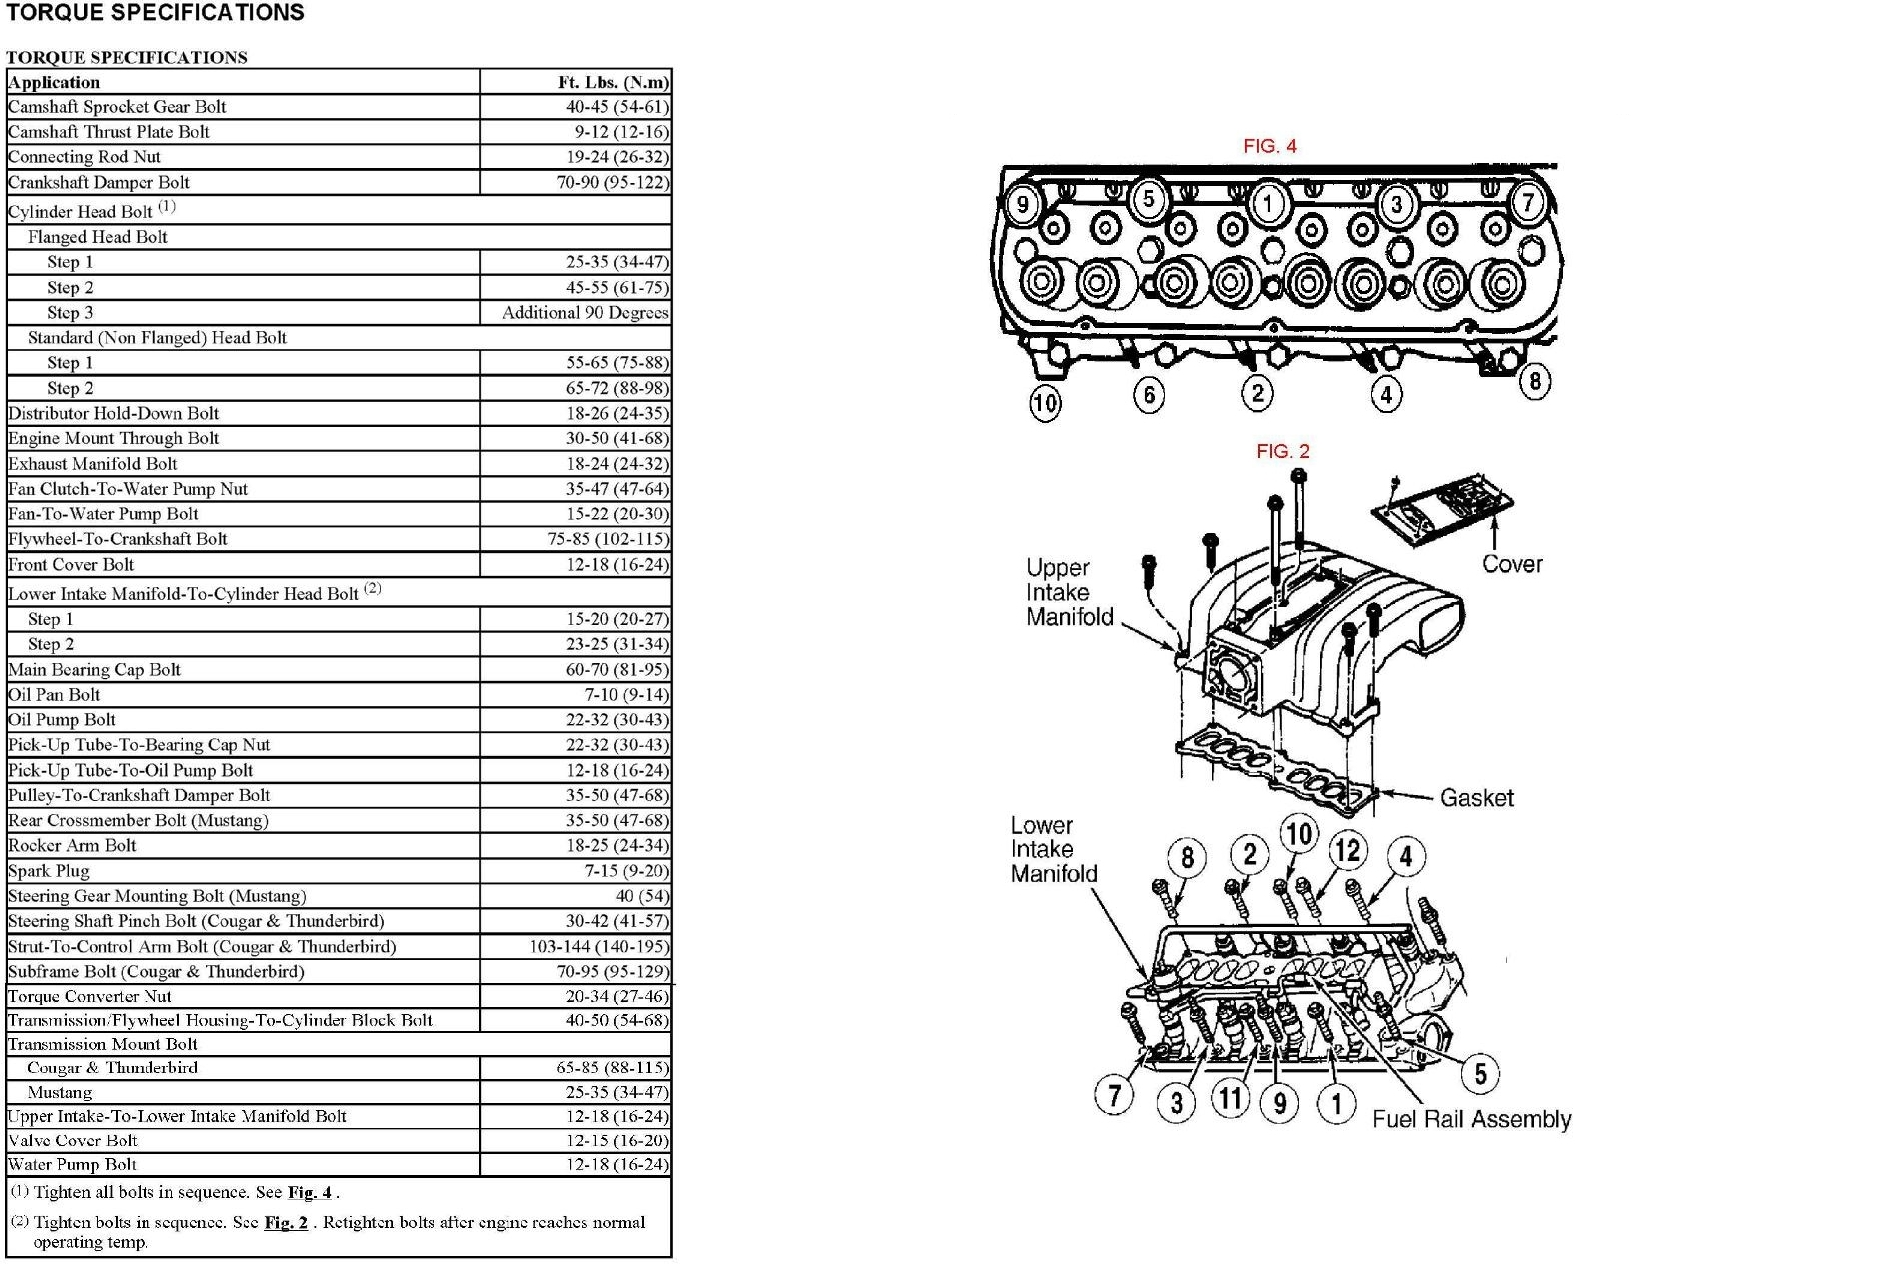 88 Fleetwood Wiring Diagram as well Grounding Wire Location Help Please 10069 furthermore Mr Coffee Wiring Diagram furthermore 1985 Chevy C10 454 Engine Diagram as well Geo Tracker Engine History. on chevy celebrity wiring diagram